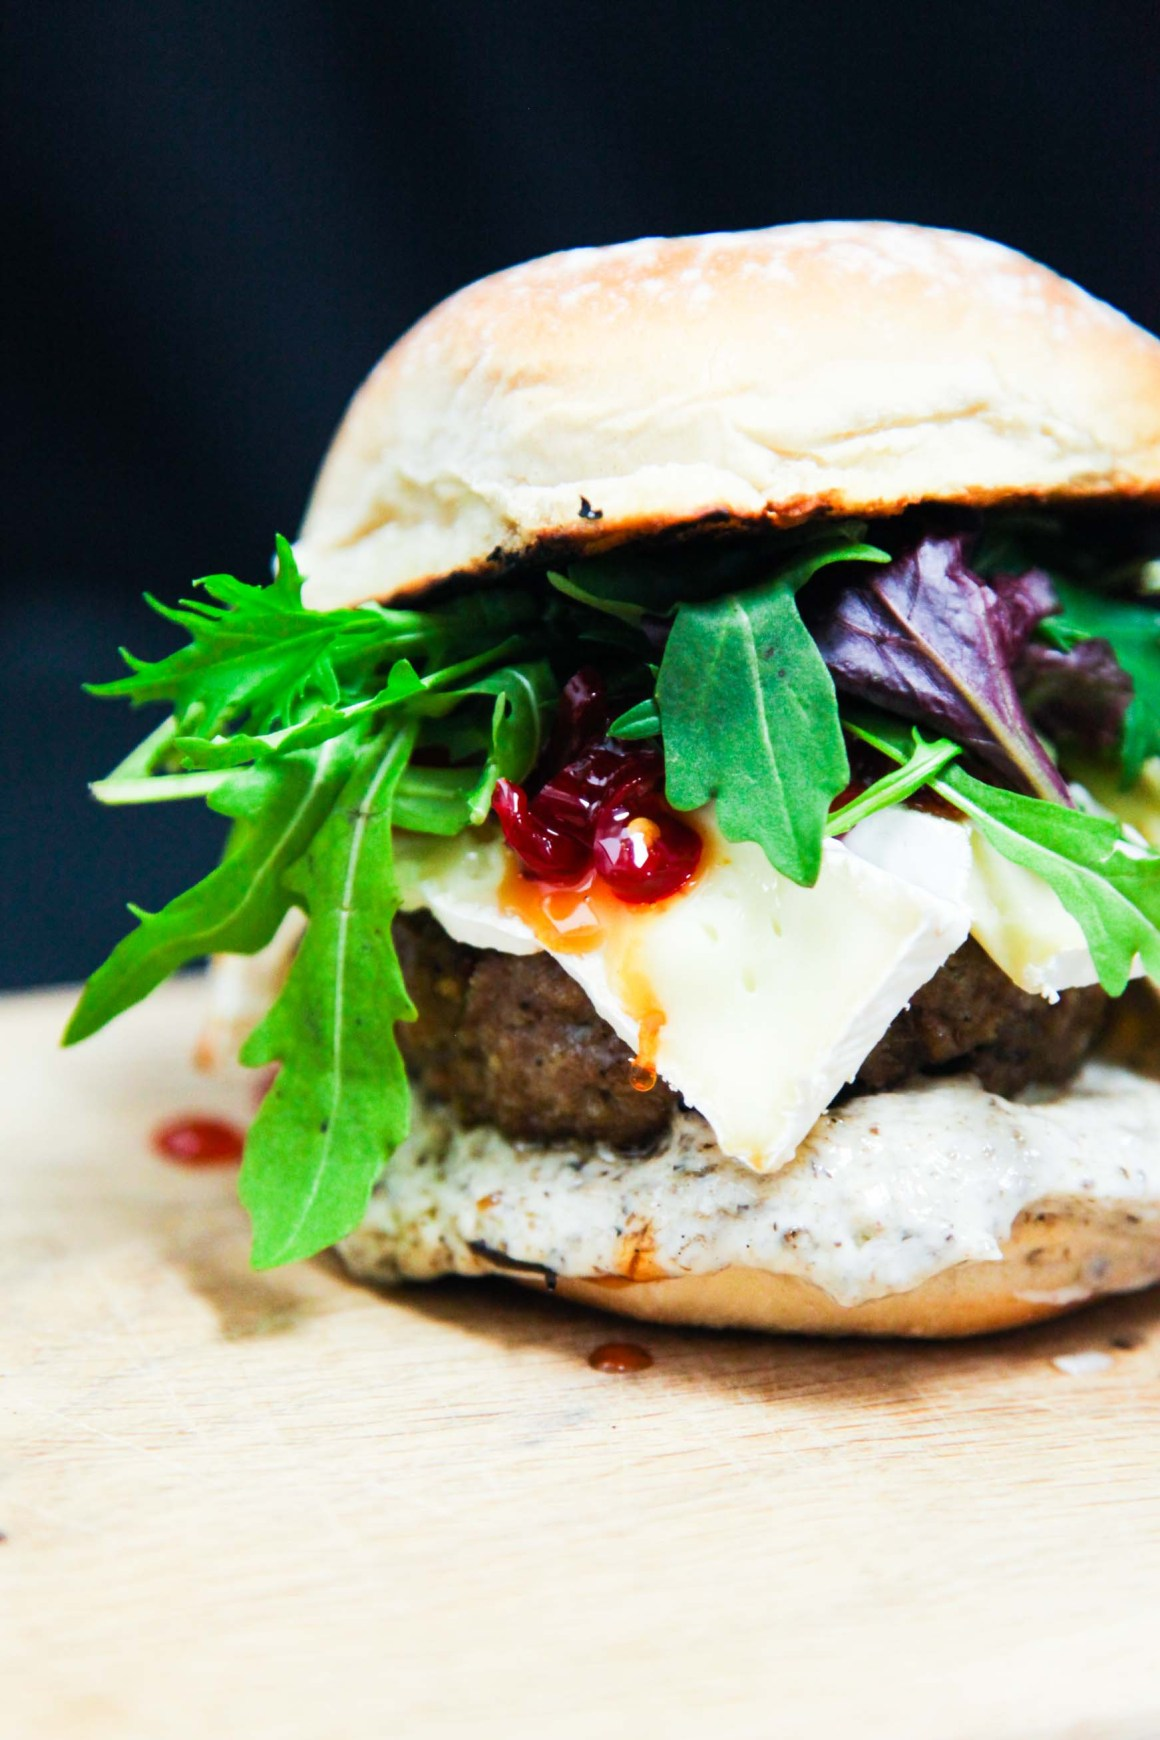 French Camembert Beef Burger with Chilli Jam and Truffle Mayo | Berries and Spice